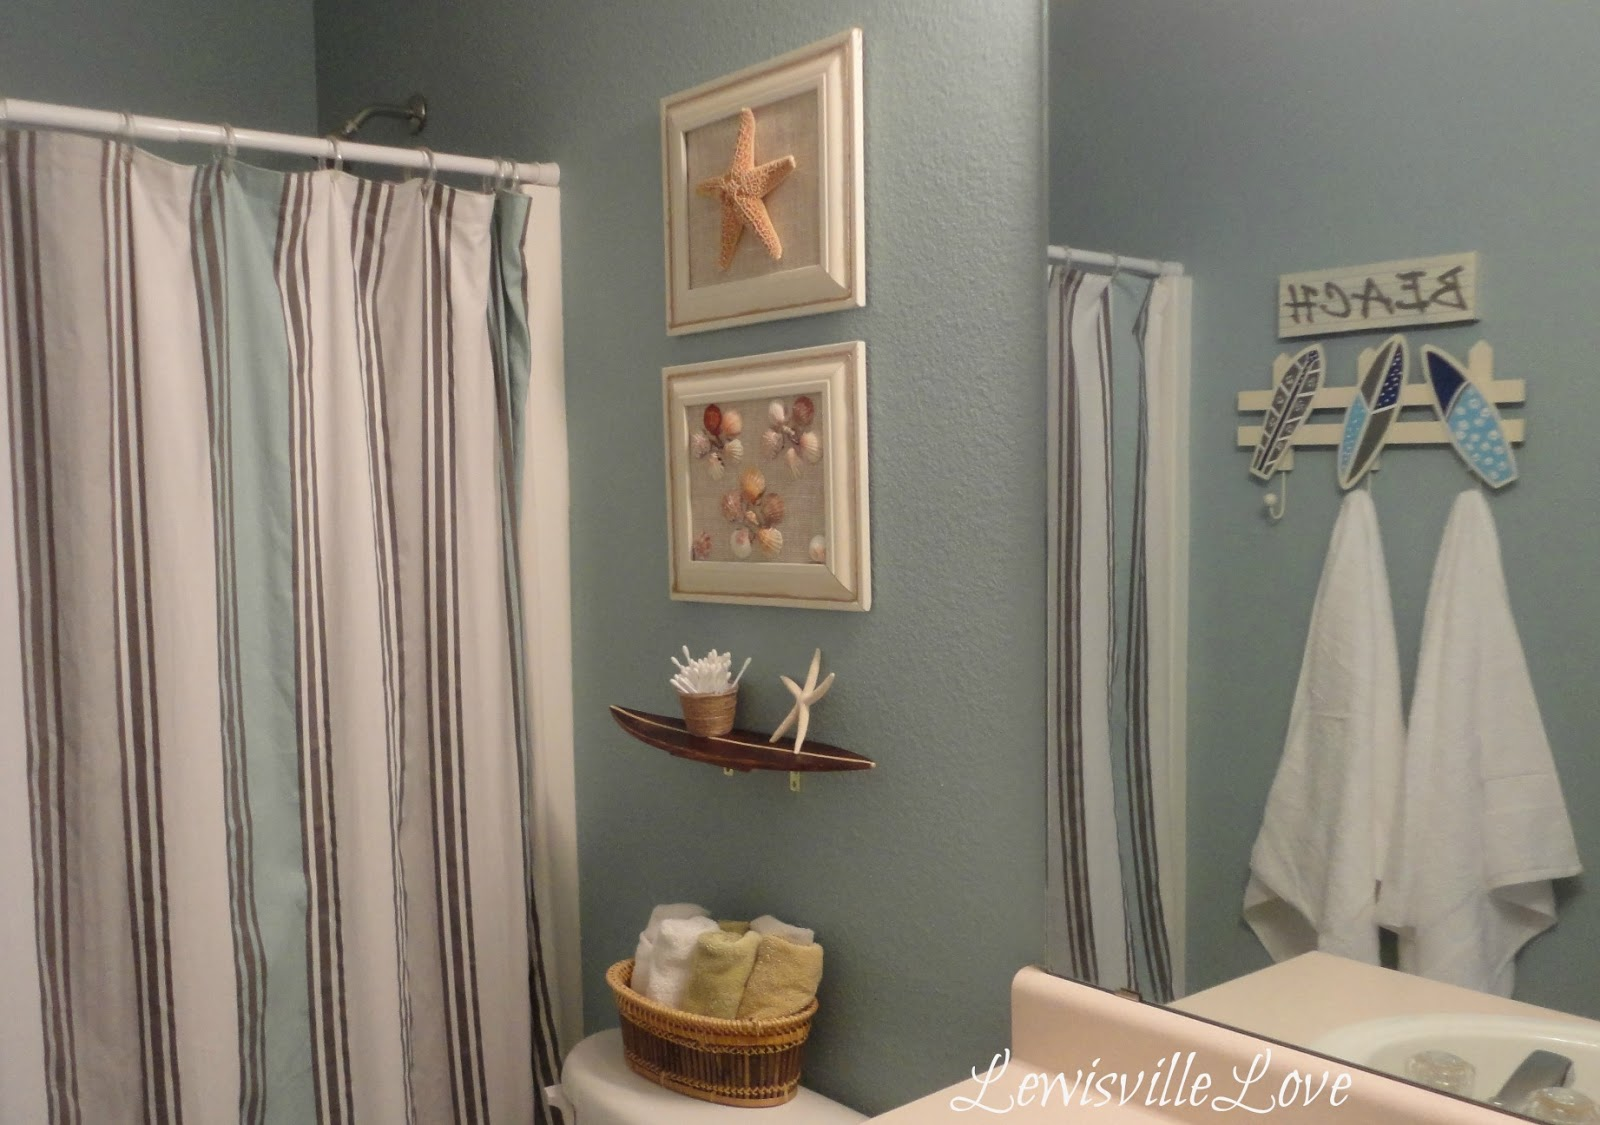 15 Beach Themed Bathroom Design Ideas: Lewisville Love: Beach Theme Bathroom Reveal